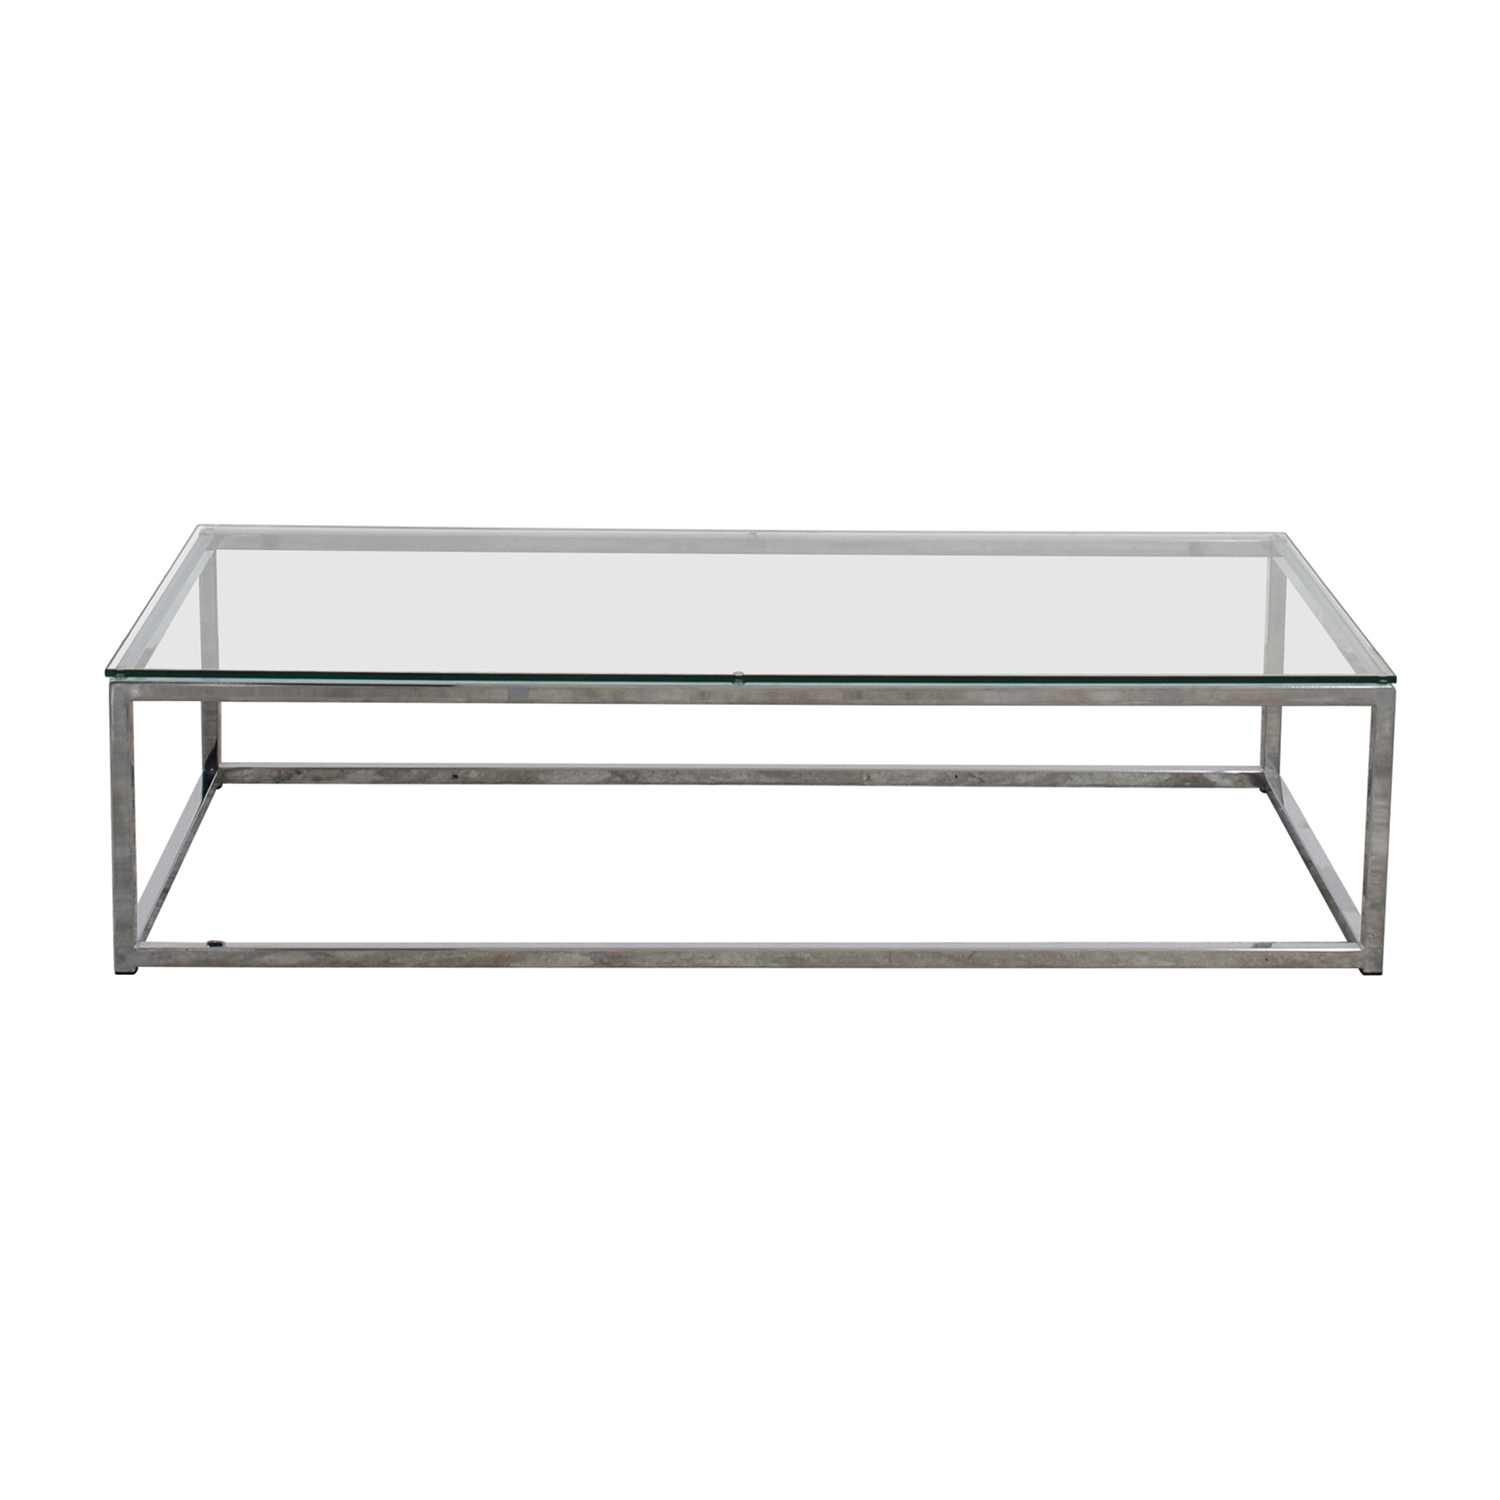 Cb2 Coffee Table.45 Off Cb2 Cb2 Glass And Chrome Coffee Table Tables